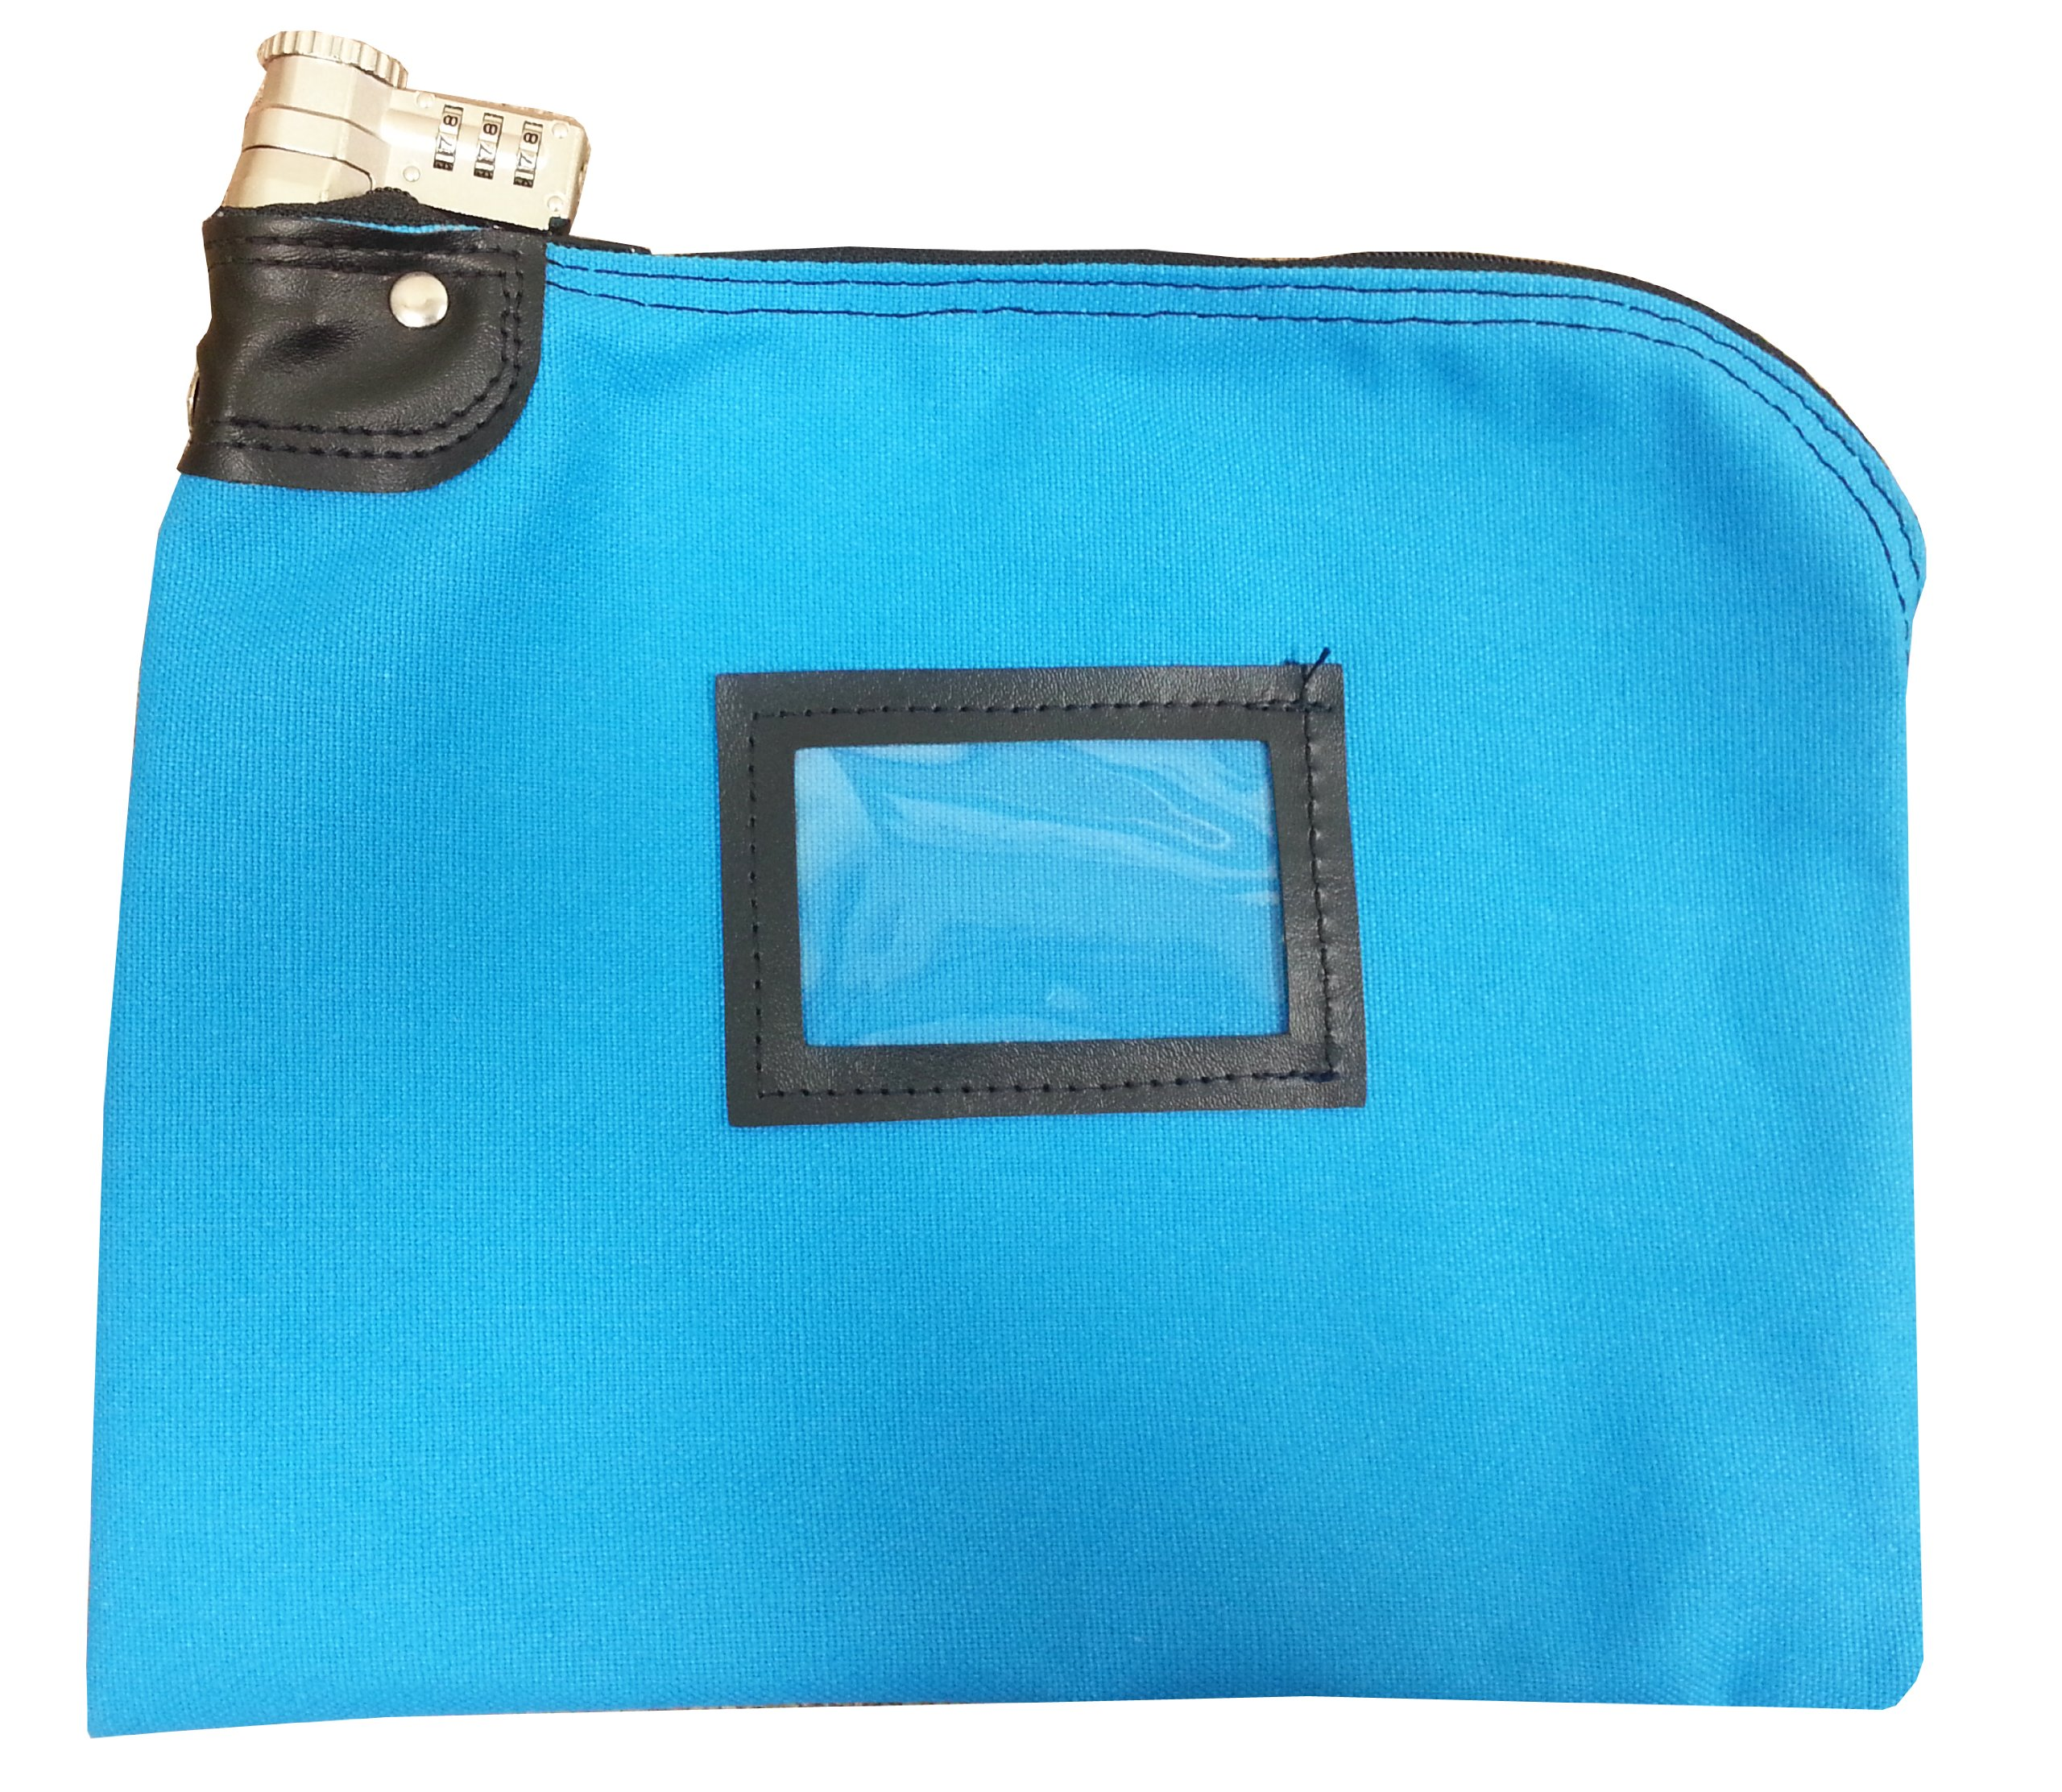 Lockable Security Bag Combination Keyed Lock Canvas Deep Sky Blue